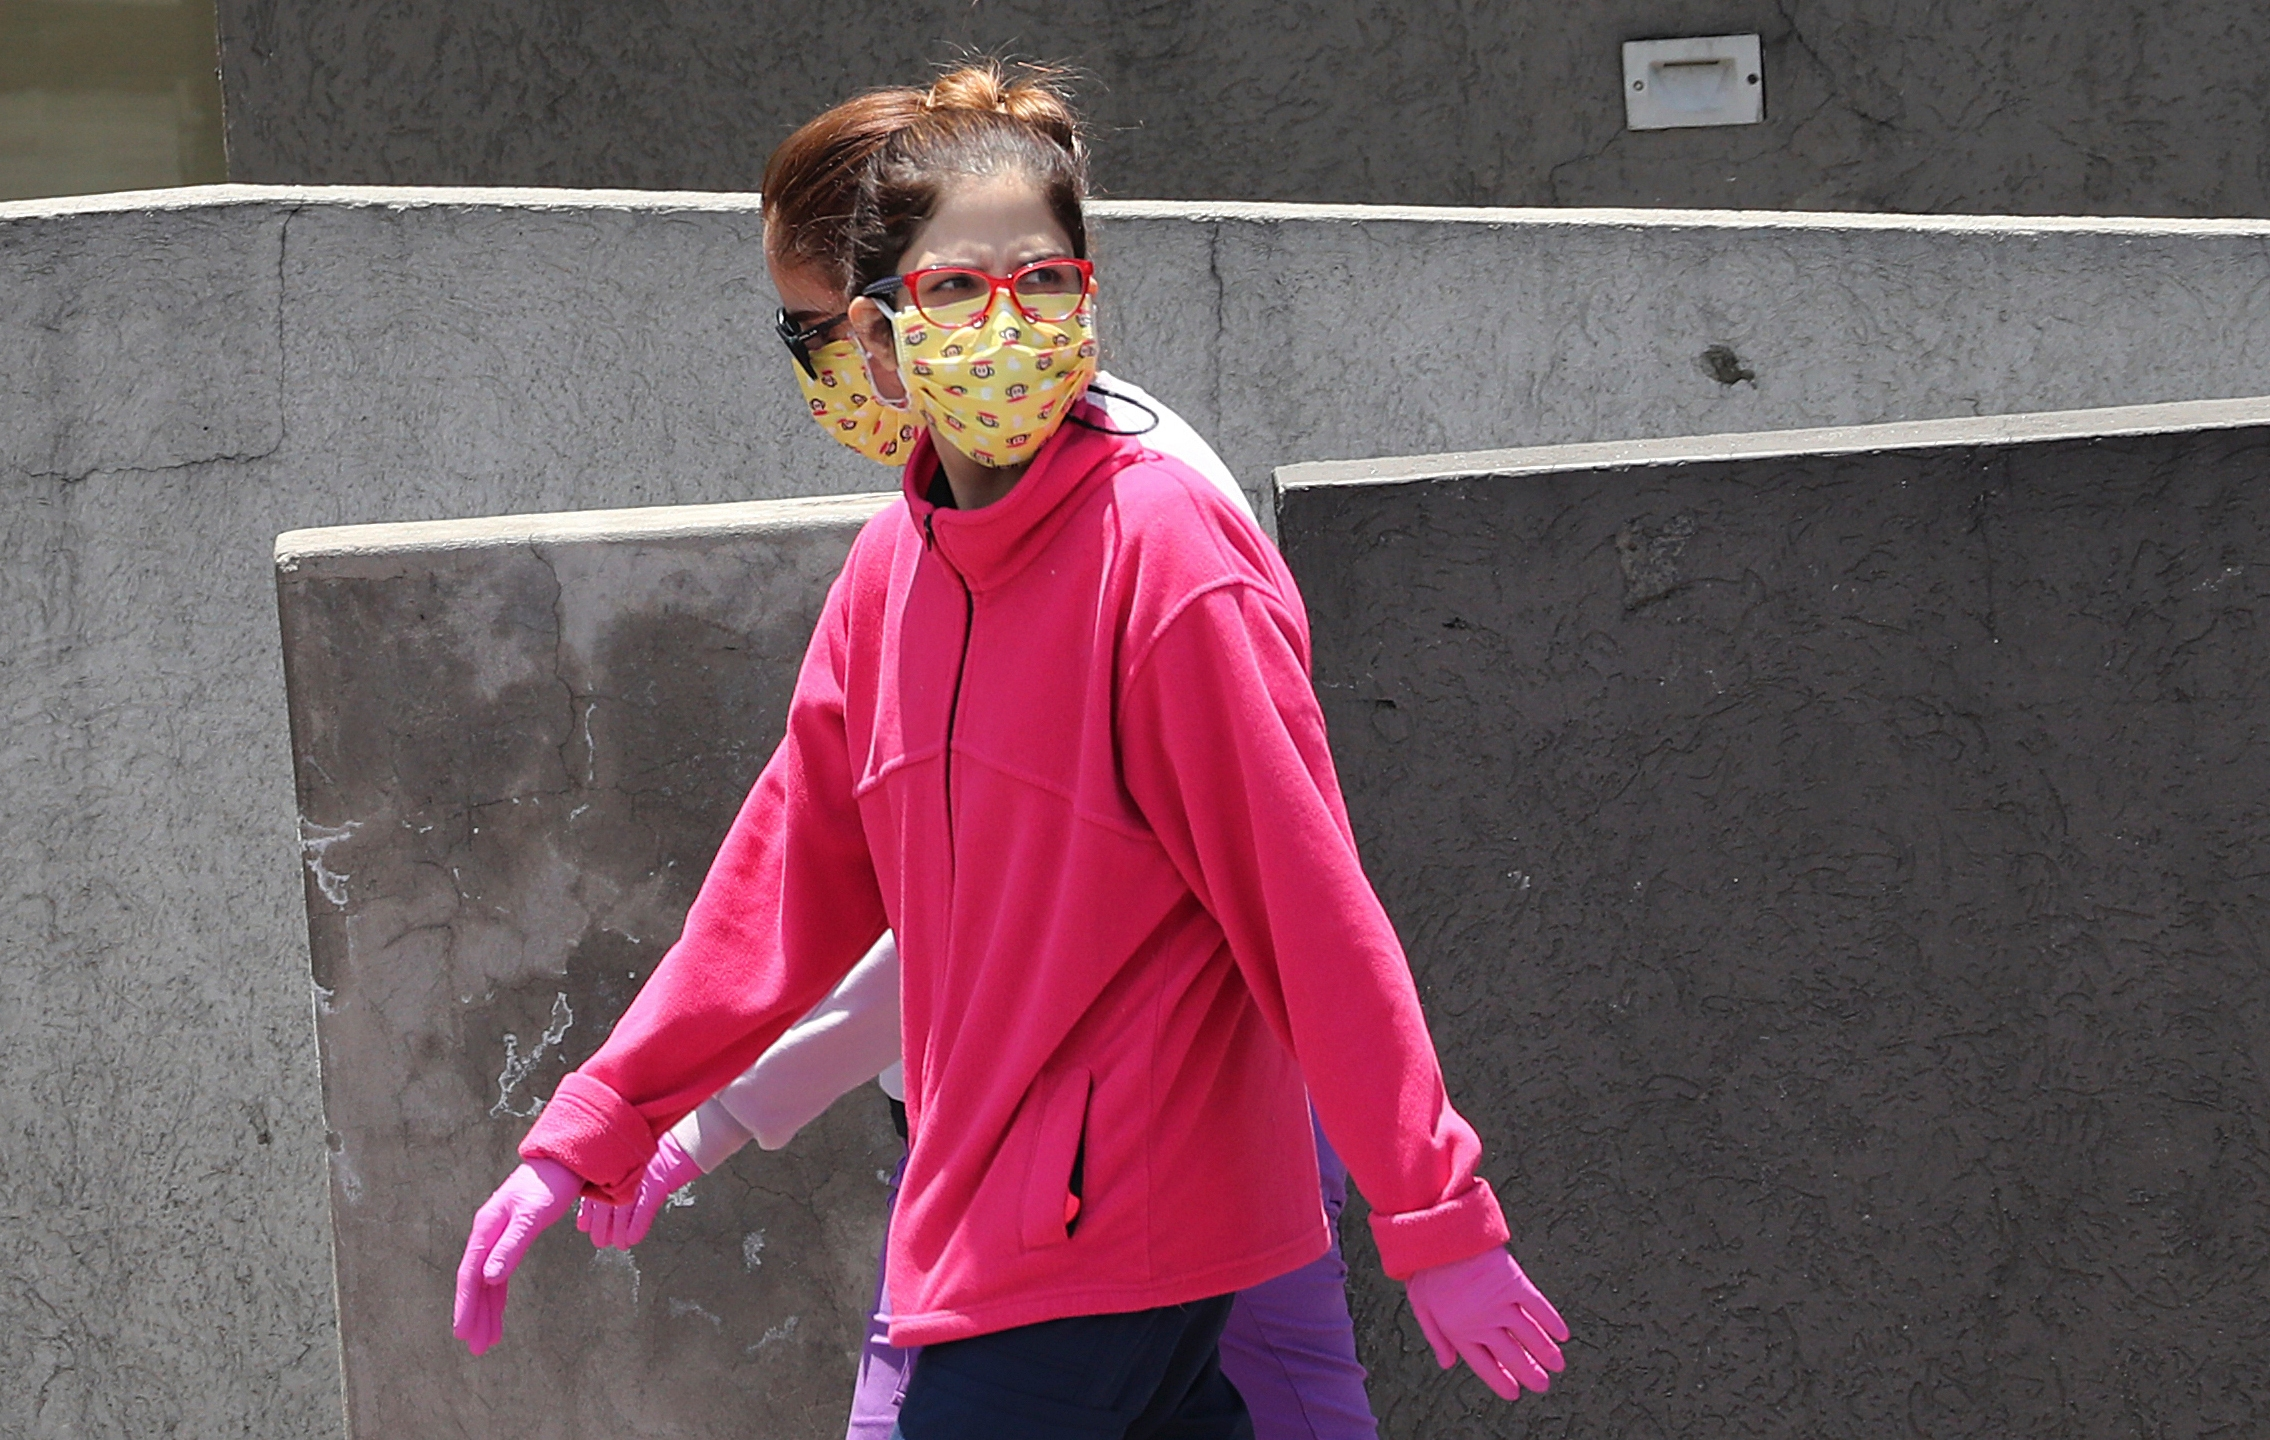 Women wear face masks and gloves as a precaution against the spread of the new coronavirus, in Quito, Ecuador on Thursday. (AP Photo/Dolores Ochoa)